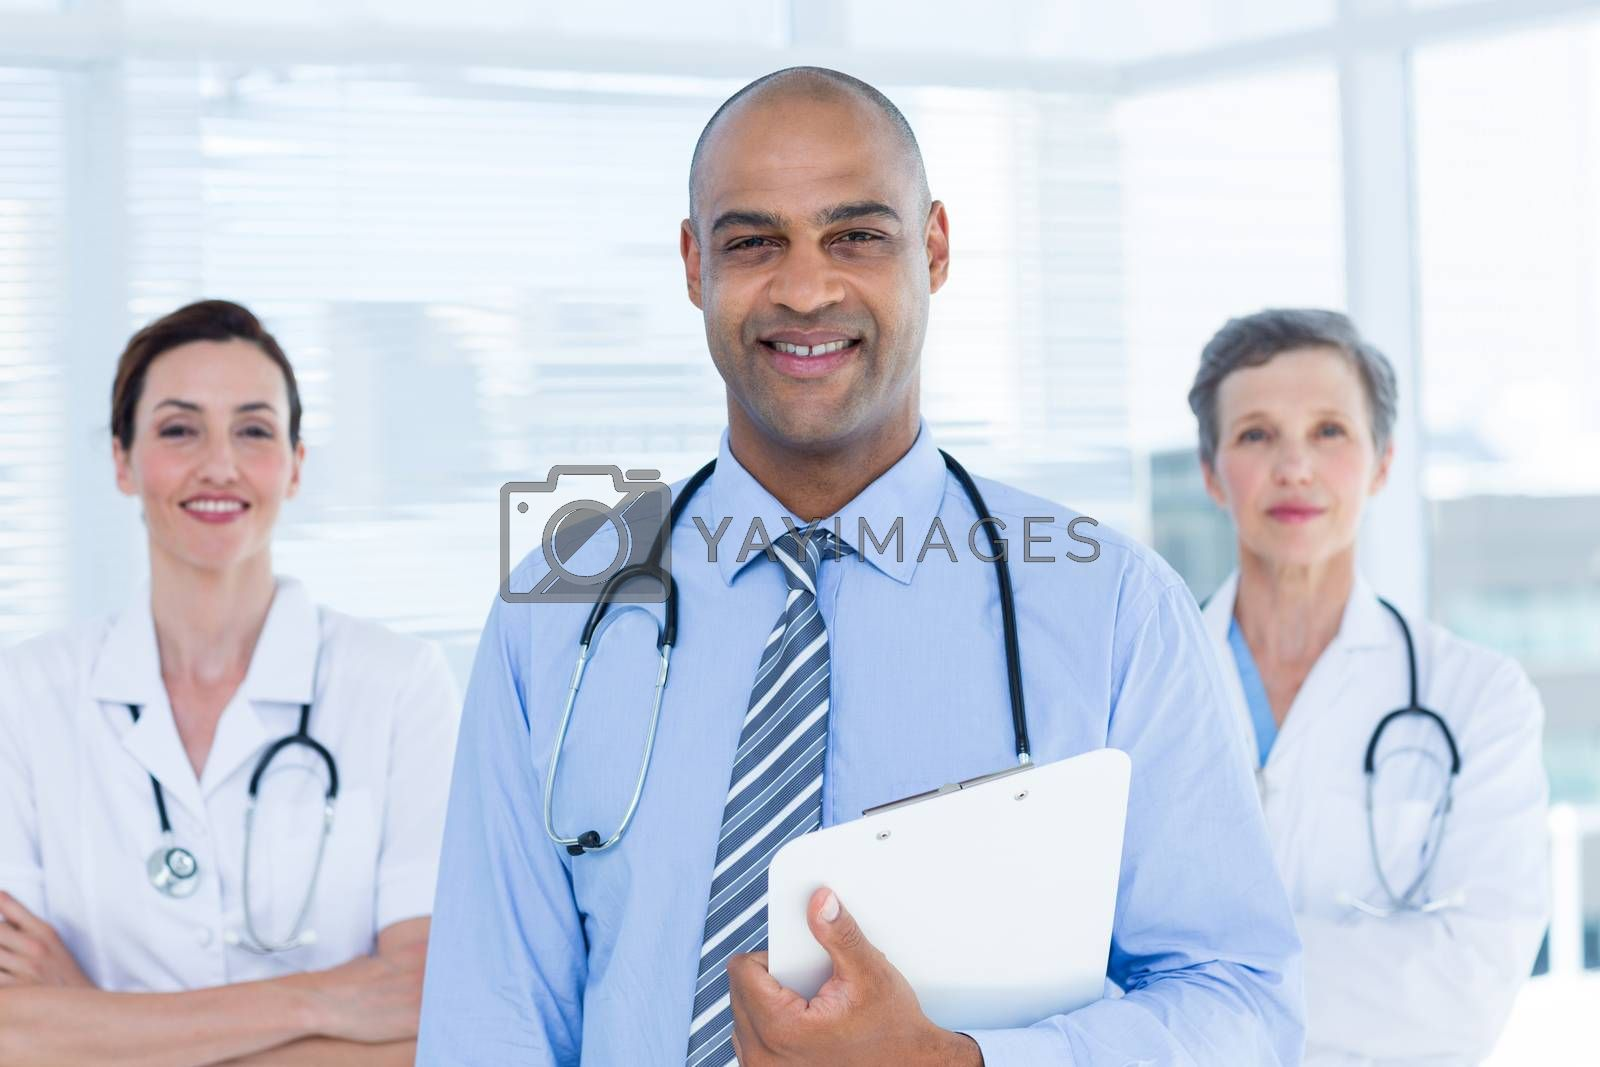 Royalty free image of Portrait of smiling doctor holding file and standing in front of his colleagues by Wavebreakmedia